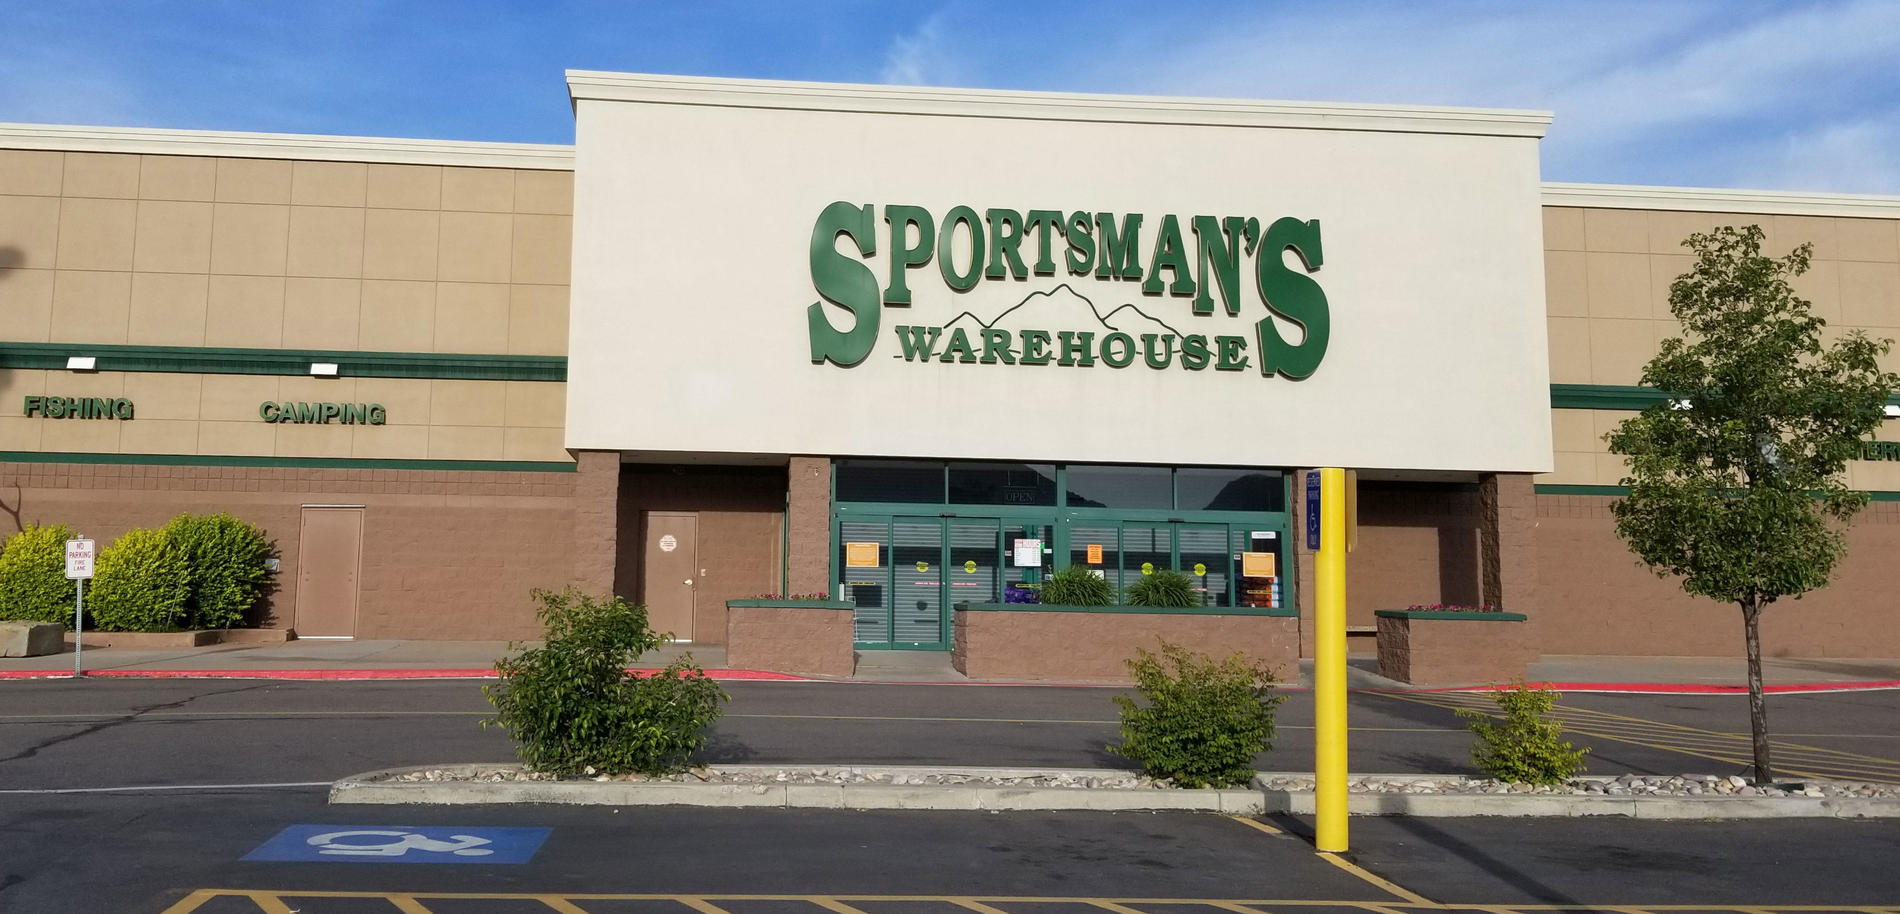 Riverdale, UT - Outdoor Sporting Gear Store | Sportsman's